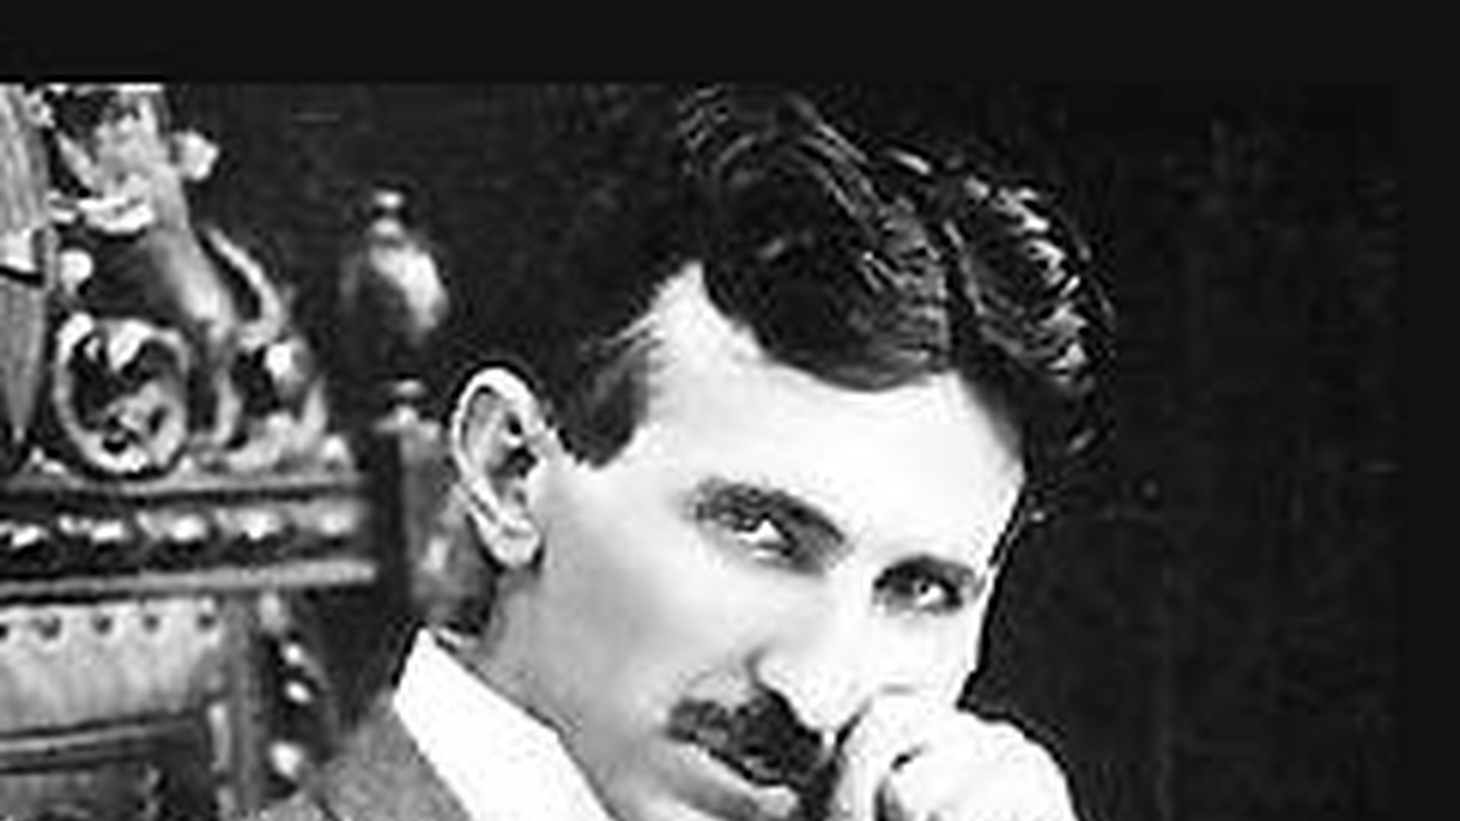 Part visionary, part mad scientist, and absolute genius, Nikola Tesla should be as famous as Edison, but he's been largely forgotten.